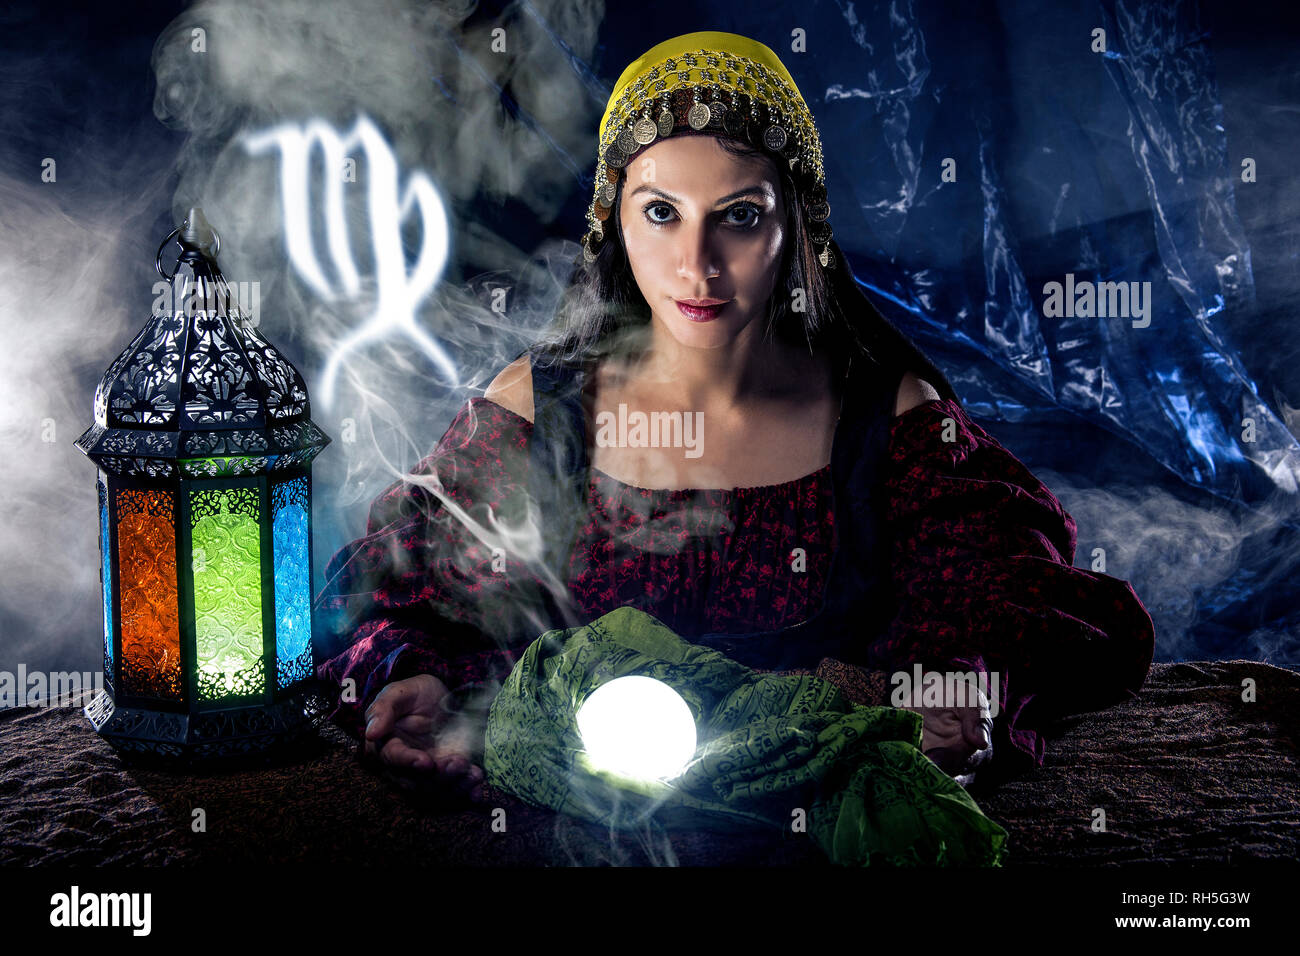 Psychic or fortune teller with crystal ball and horoscope zodiac sign of Virgo - Stock Image